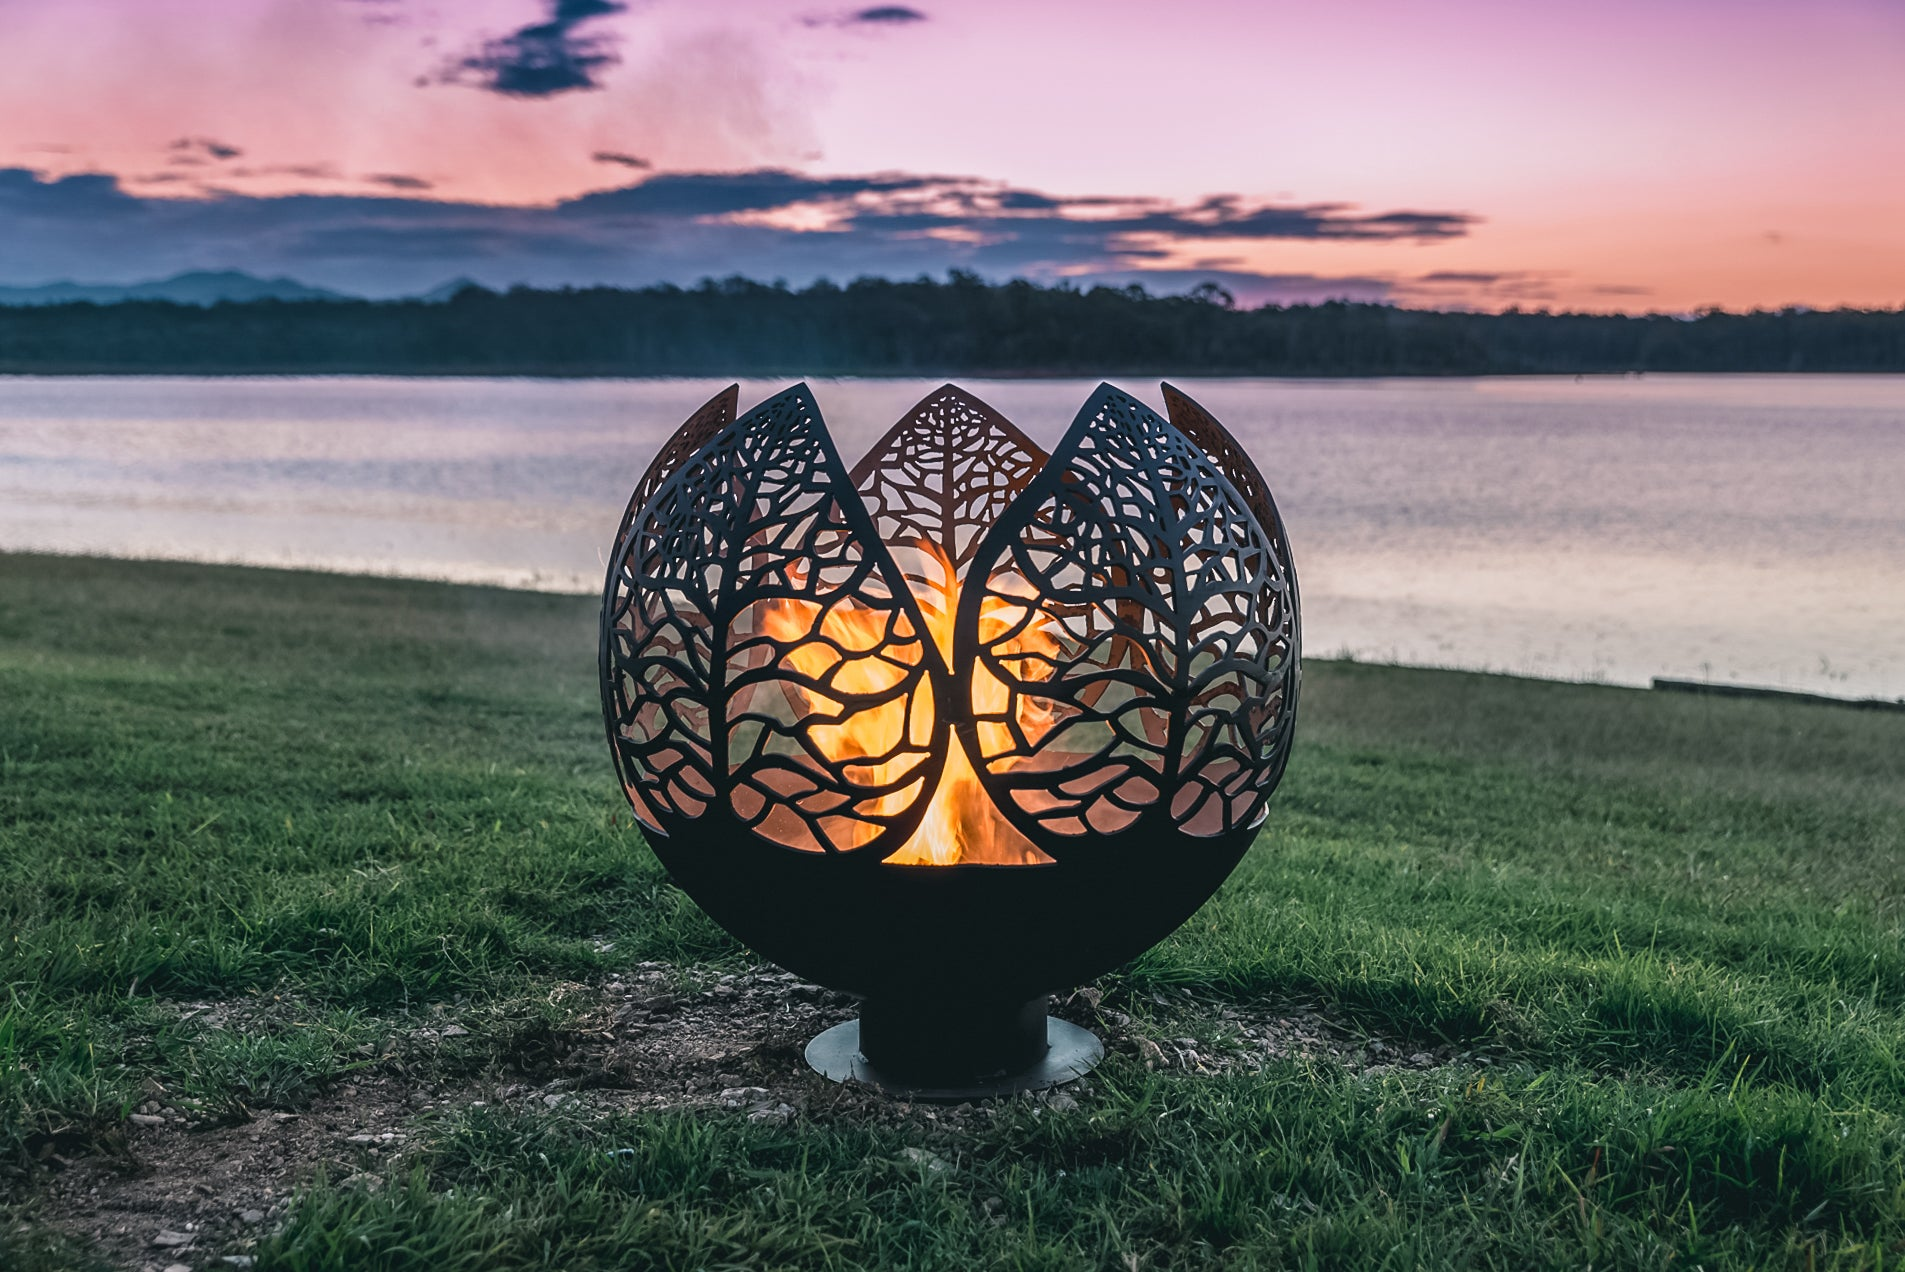 Fern Valley Firepit